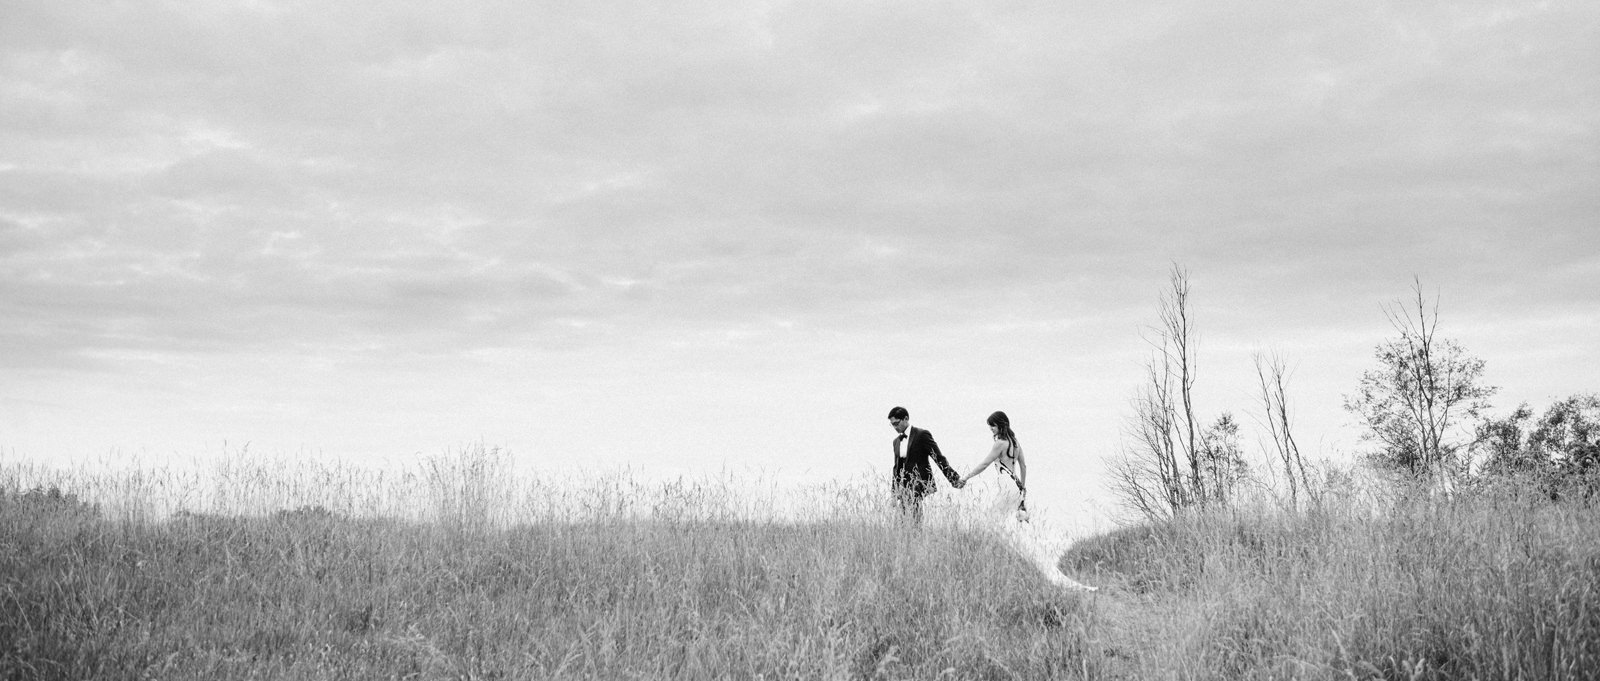 173-cinematic-wedding-photo-by-top-washington-wedding-photographer-ryan-flynn.jpg